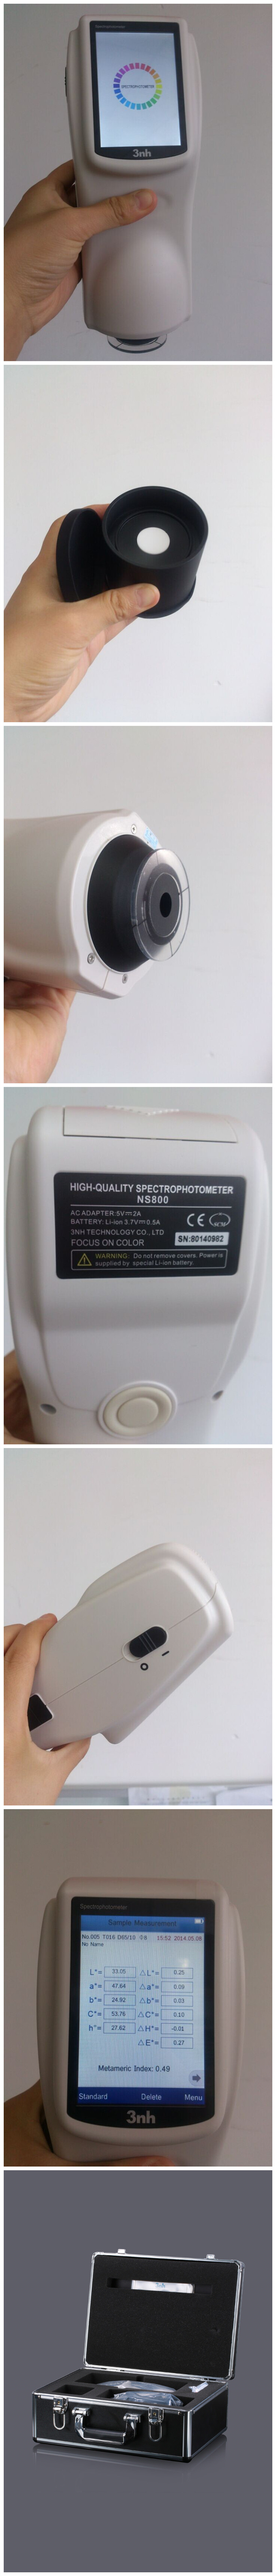 NS800 color spectrophotometer detail